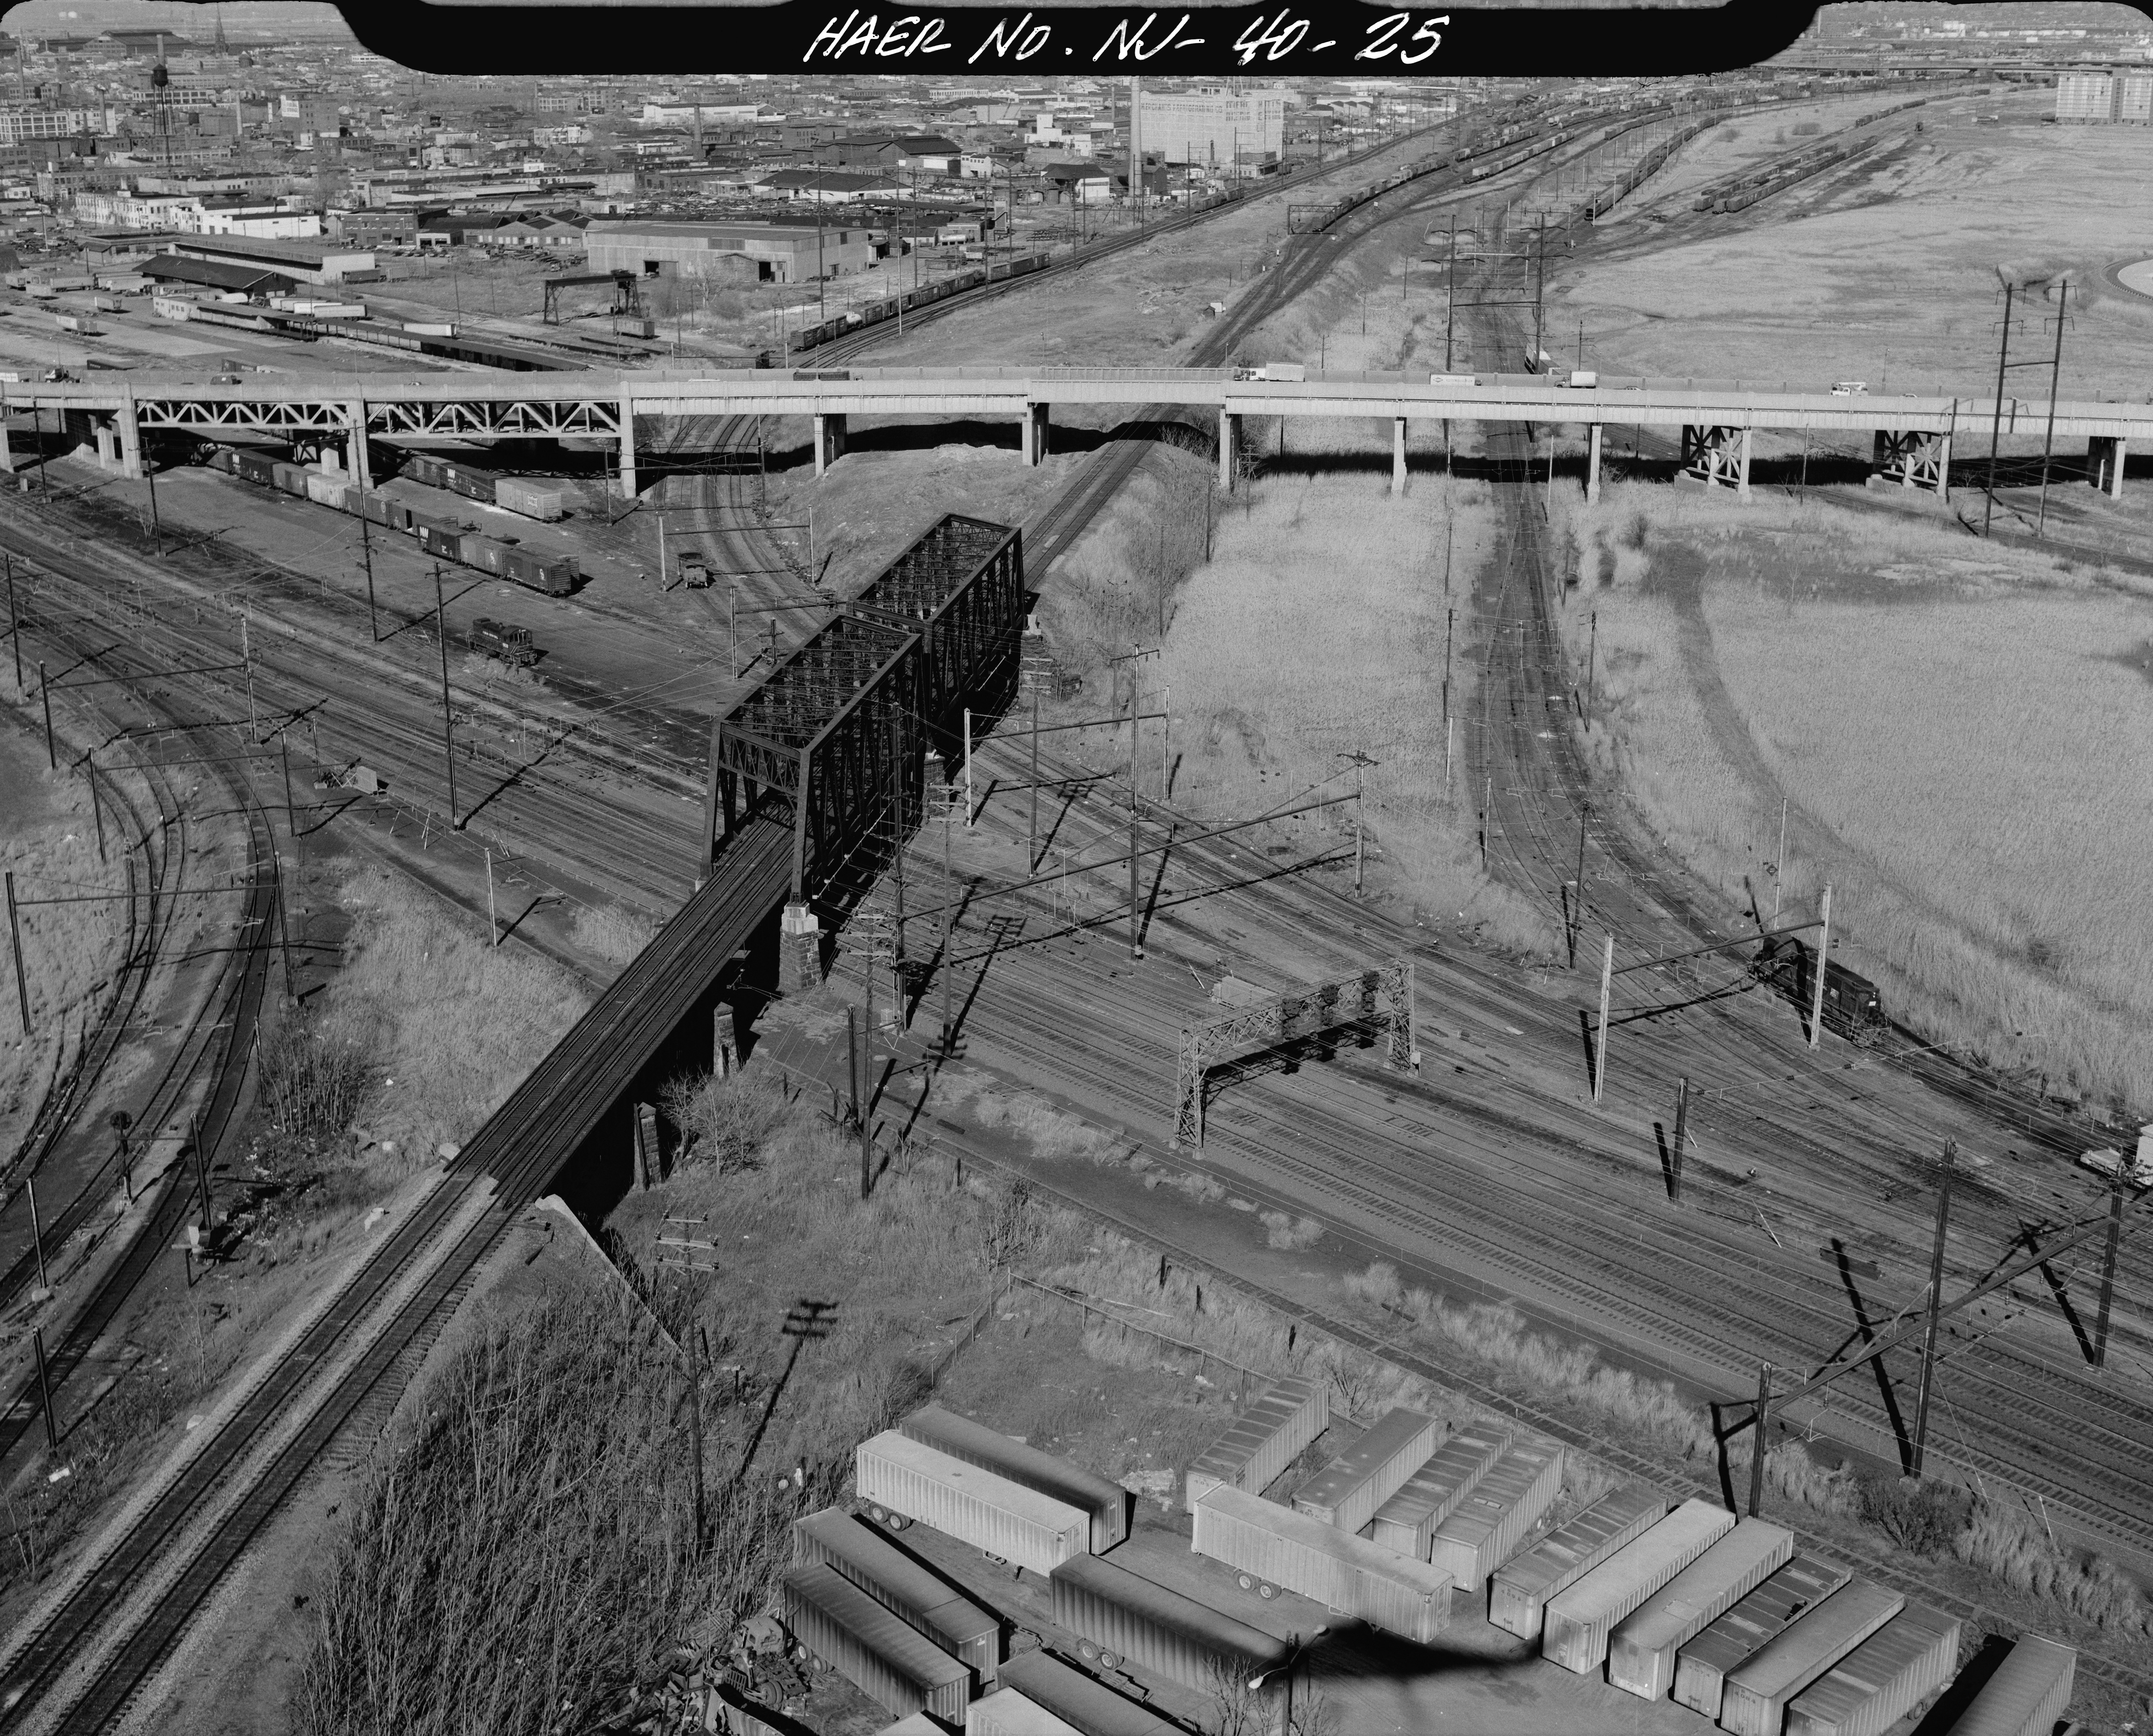 File:Lehigh valley bridge over NEC from air at hunter connection.jpeg ...